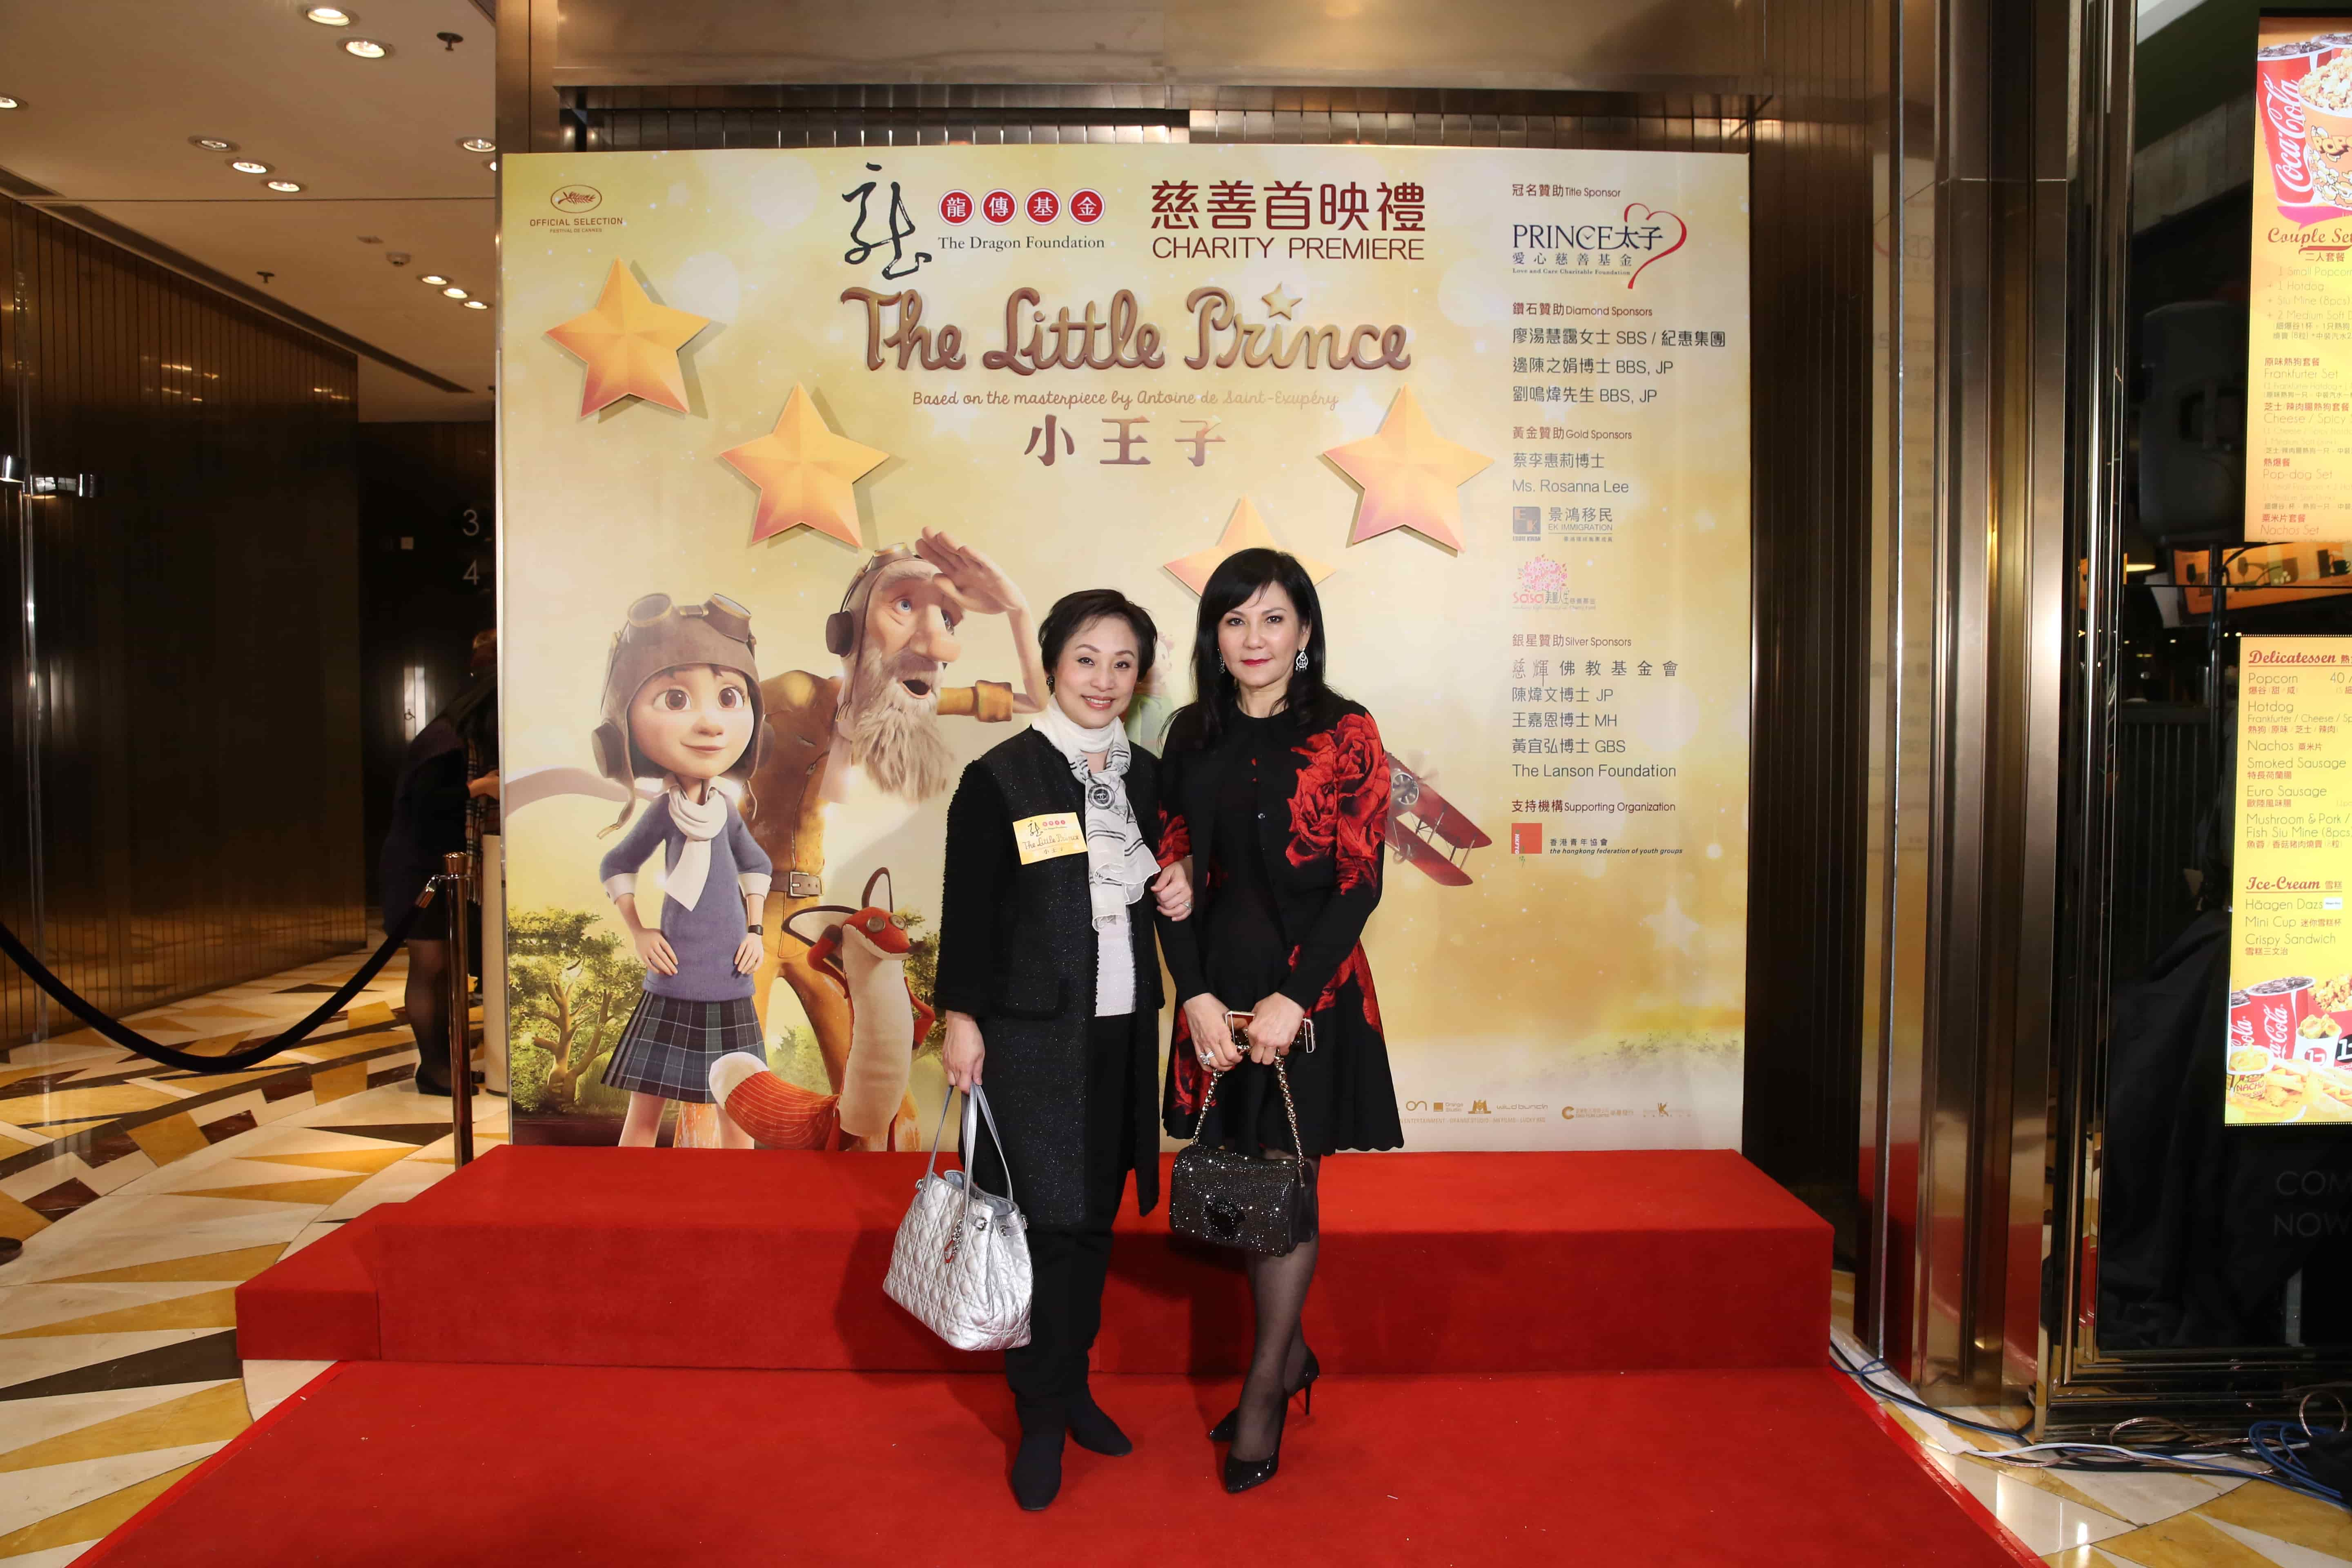 """The Little Prince"" Charity Premiere - The Dragon Foundation 龍傳基金"